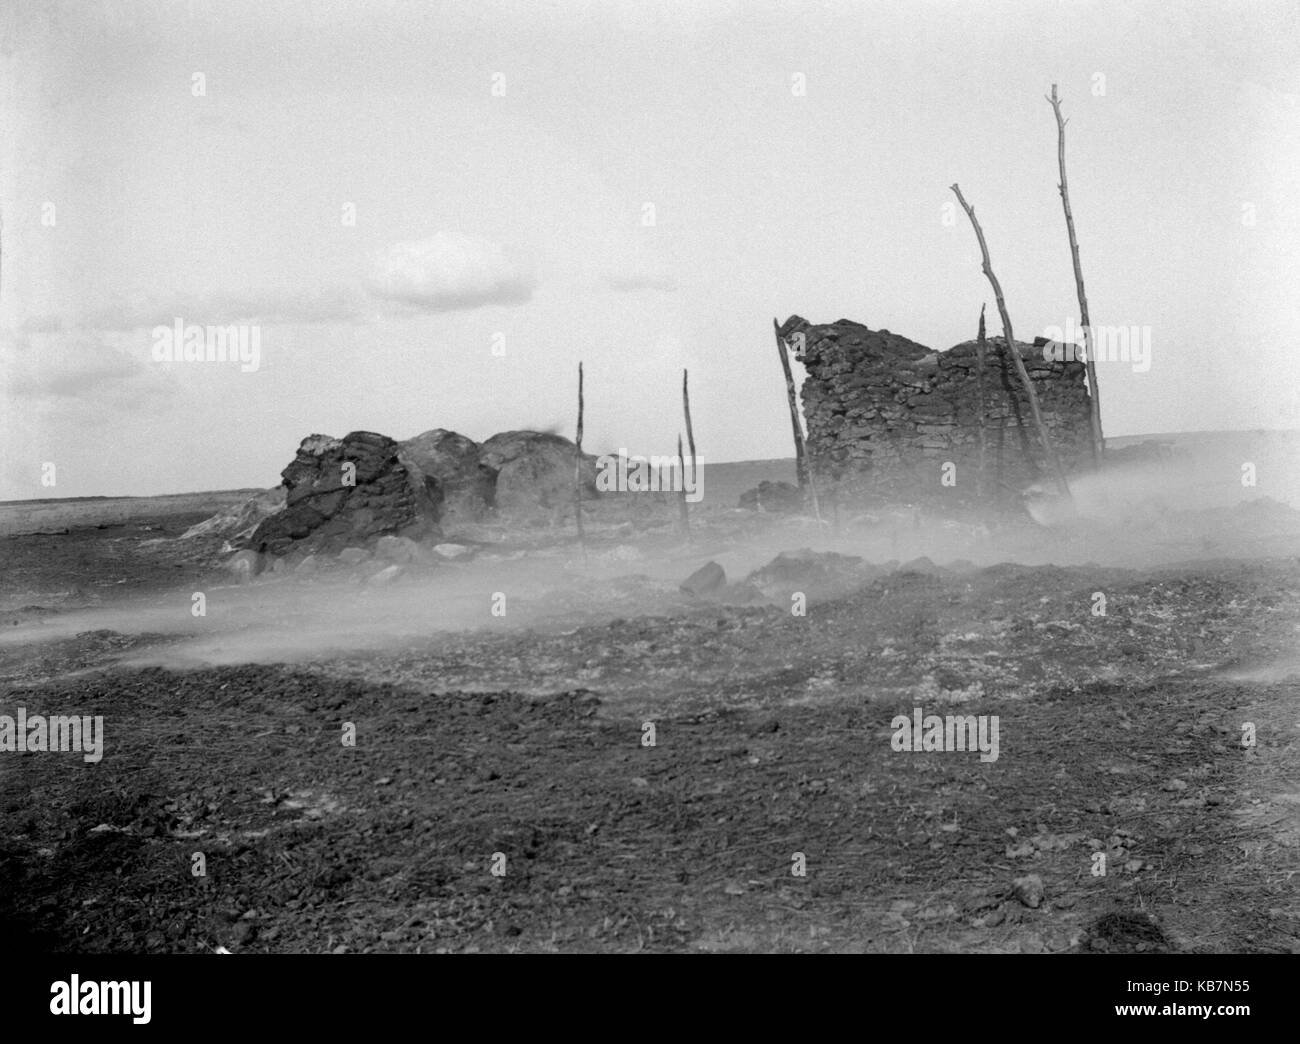 AJAXNETPHOTO. 1903. CANADA, EXACT LOCATION UNKNOWN. - ANNOTATION ON GLASS PLATE ' BURNING STABLE'.PHOTOGRAPHER:UNKNOWN© - Stock Image